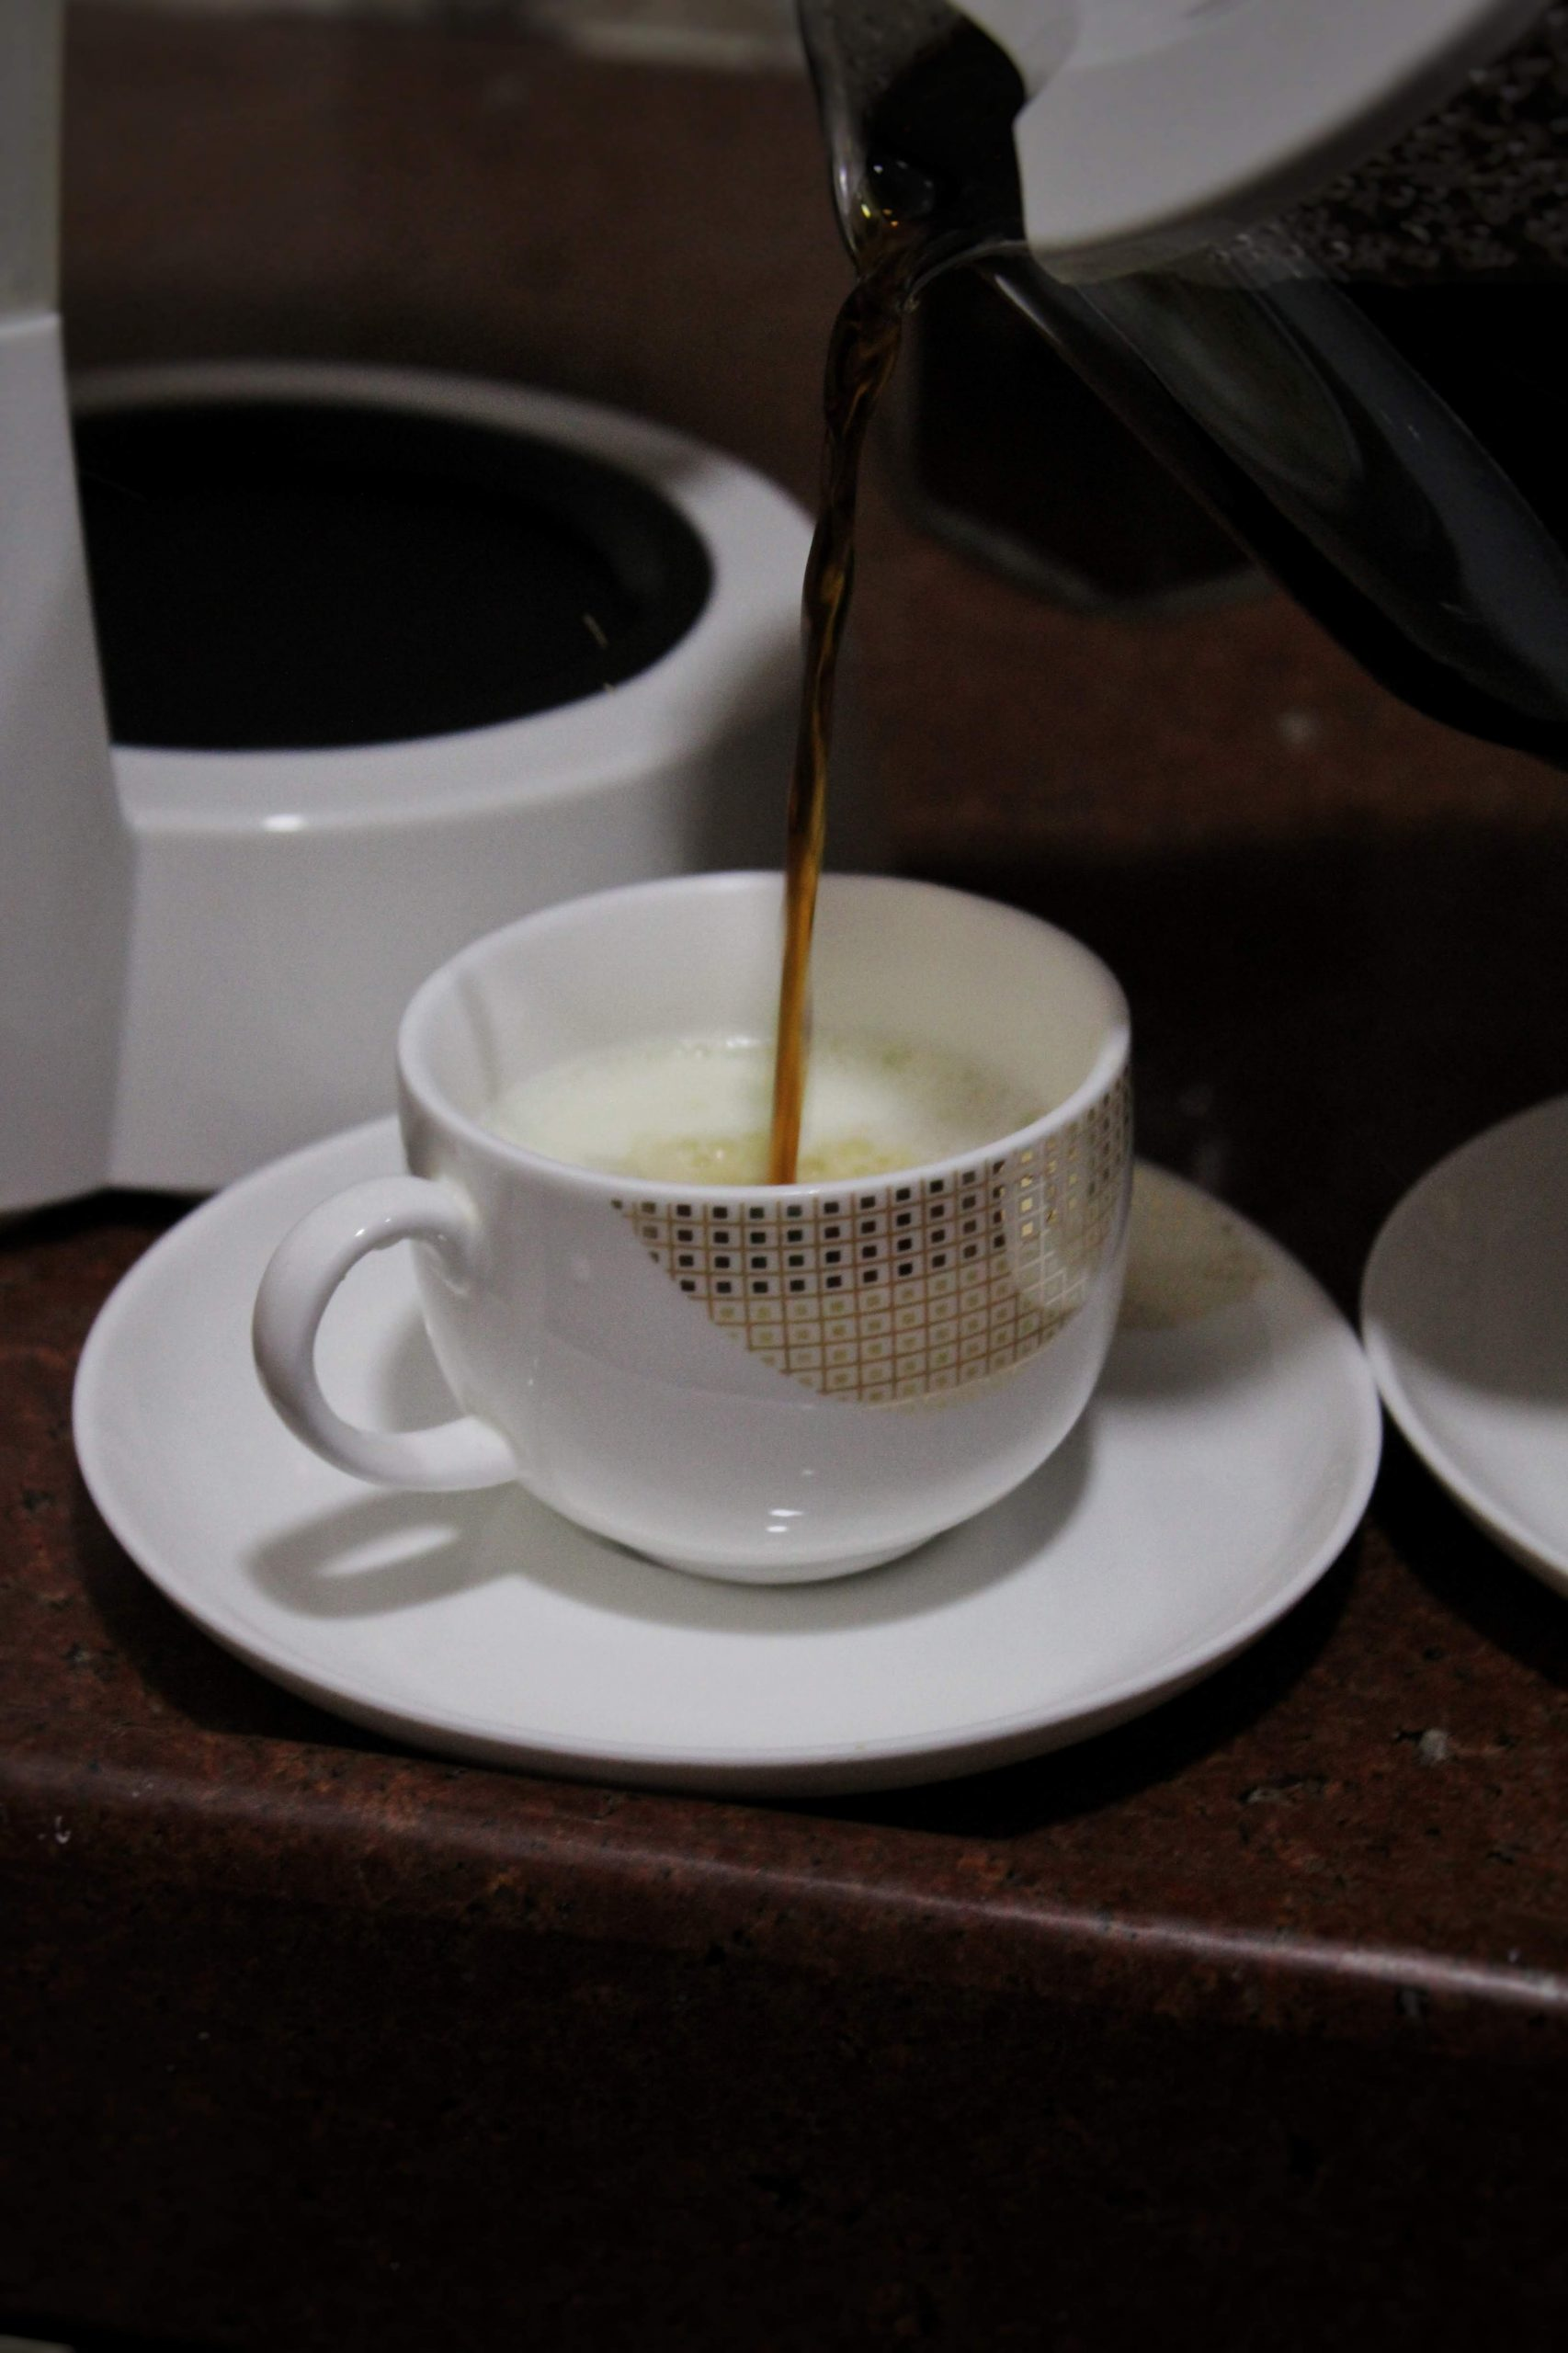 Pouring Coffee to a Cup